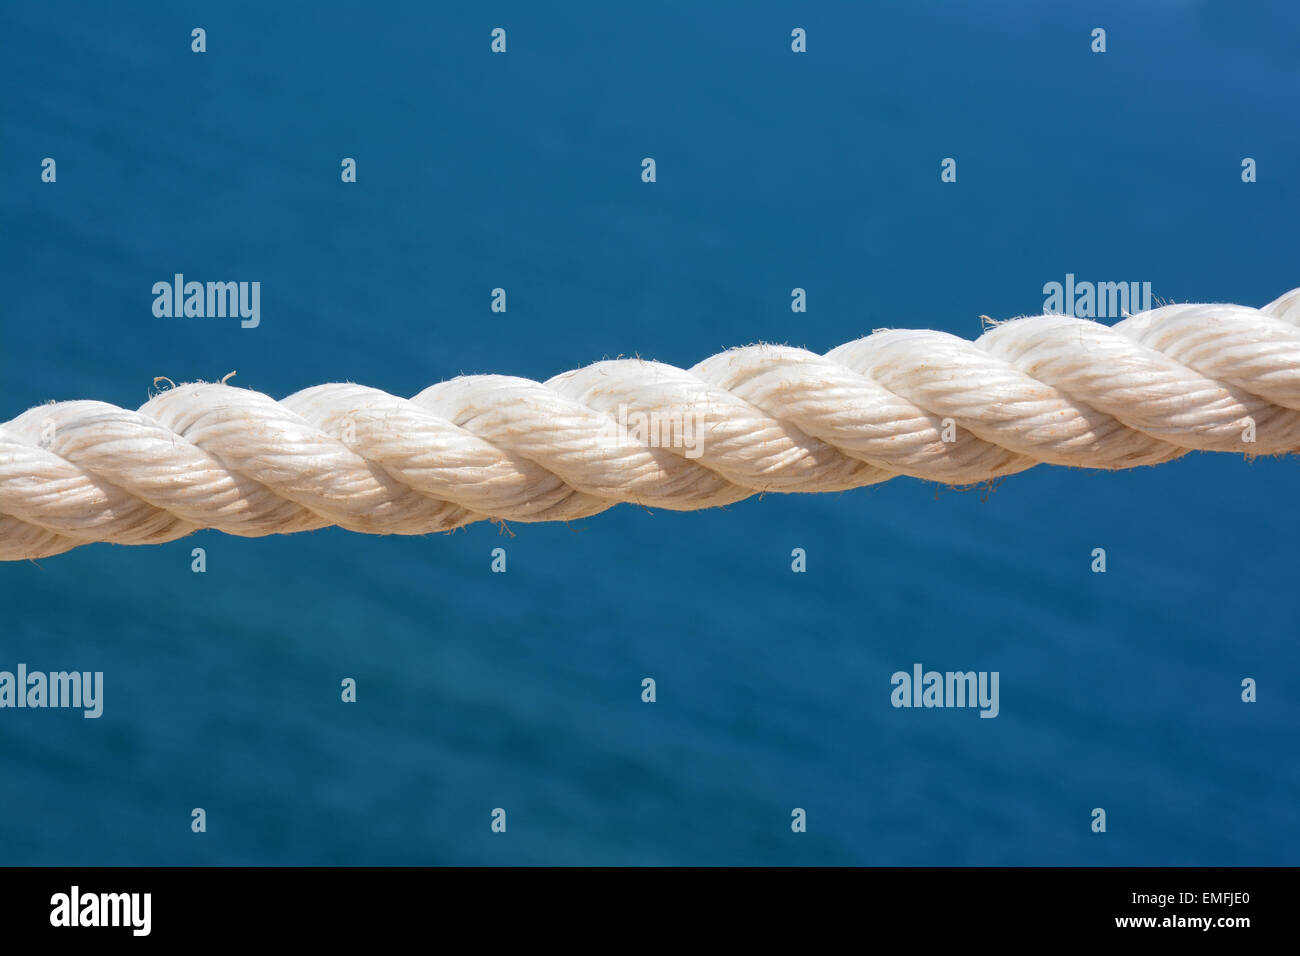 Corde blanche Photo Stock